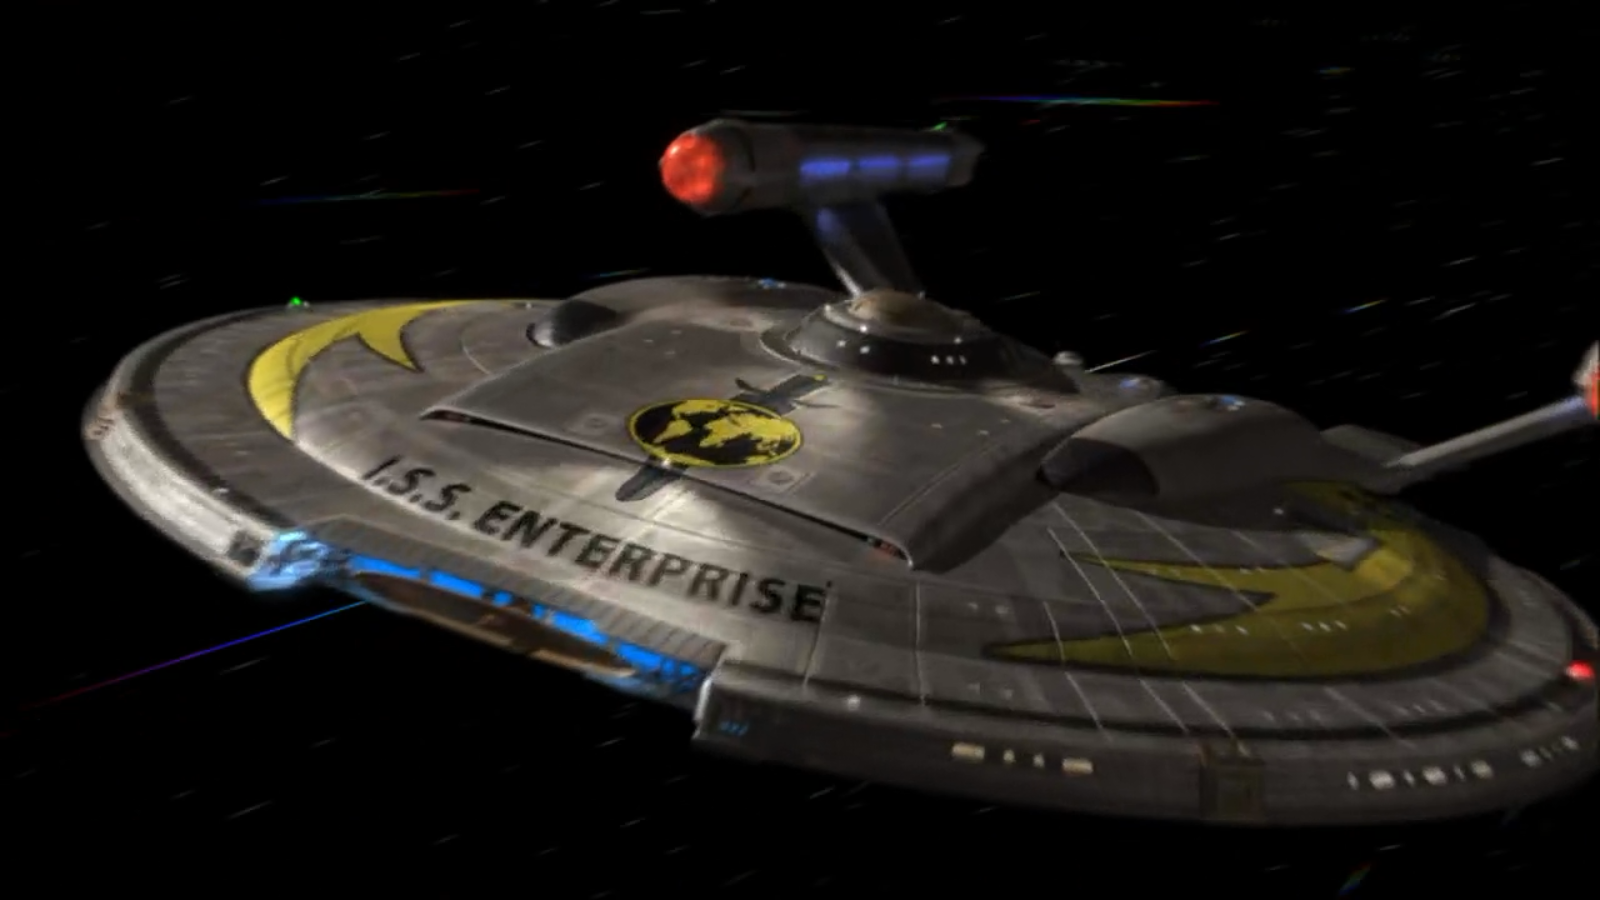 Enterprise Season 5 Mirror Universe